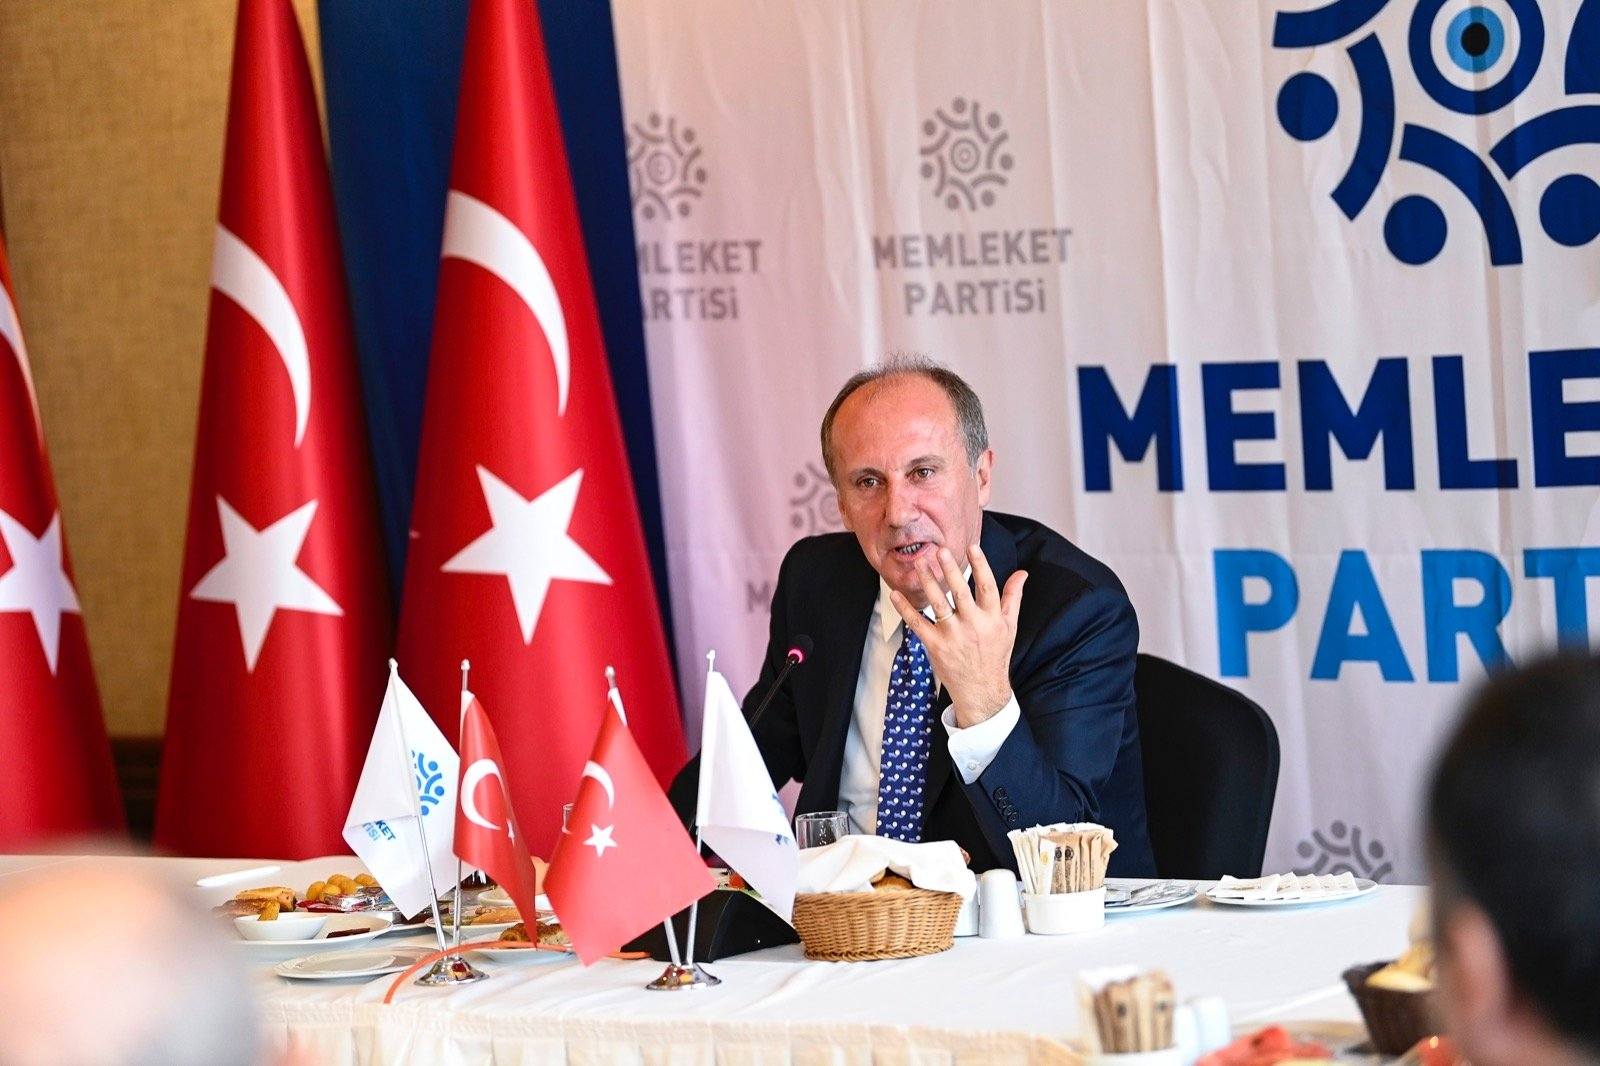 Homeland Party Chairperson Muharrem Ince speaks to reporters in Ankara, Turkey, Sept. 16, 2021. (DHA Photo)